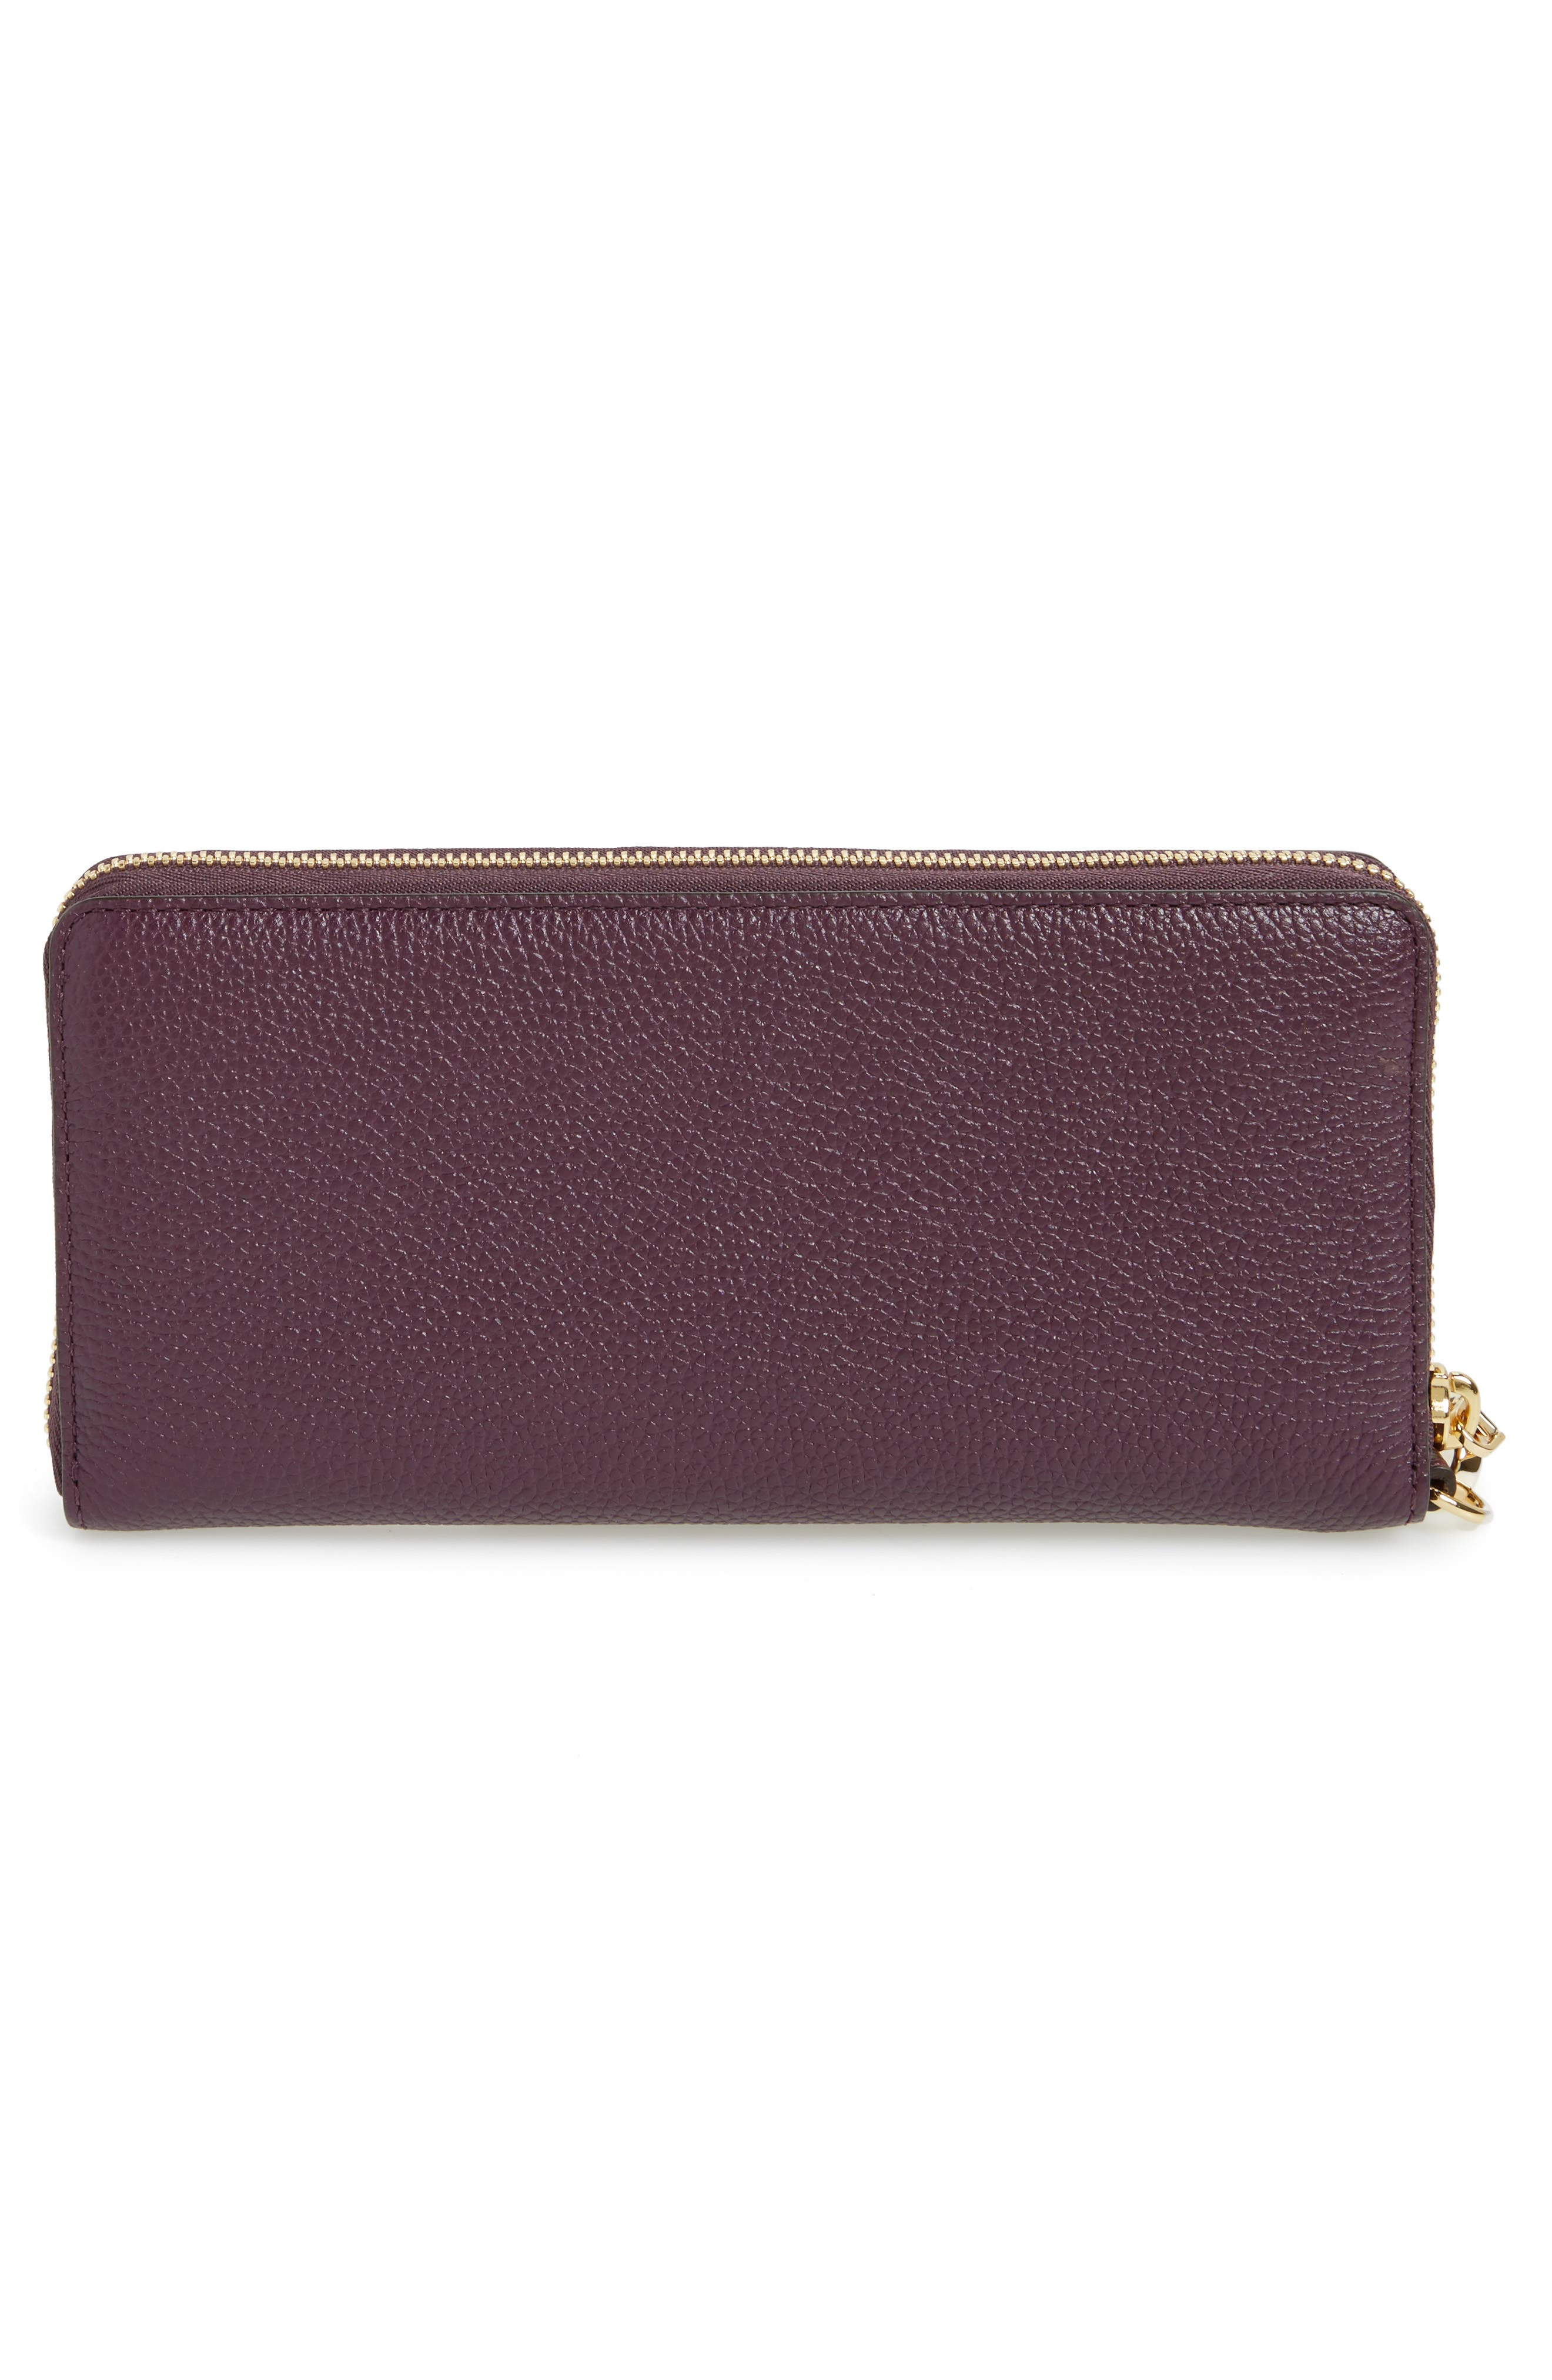 'Mercer' Leather Continental Wallet,                             Alternate thumbnail 3, color,                             599